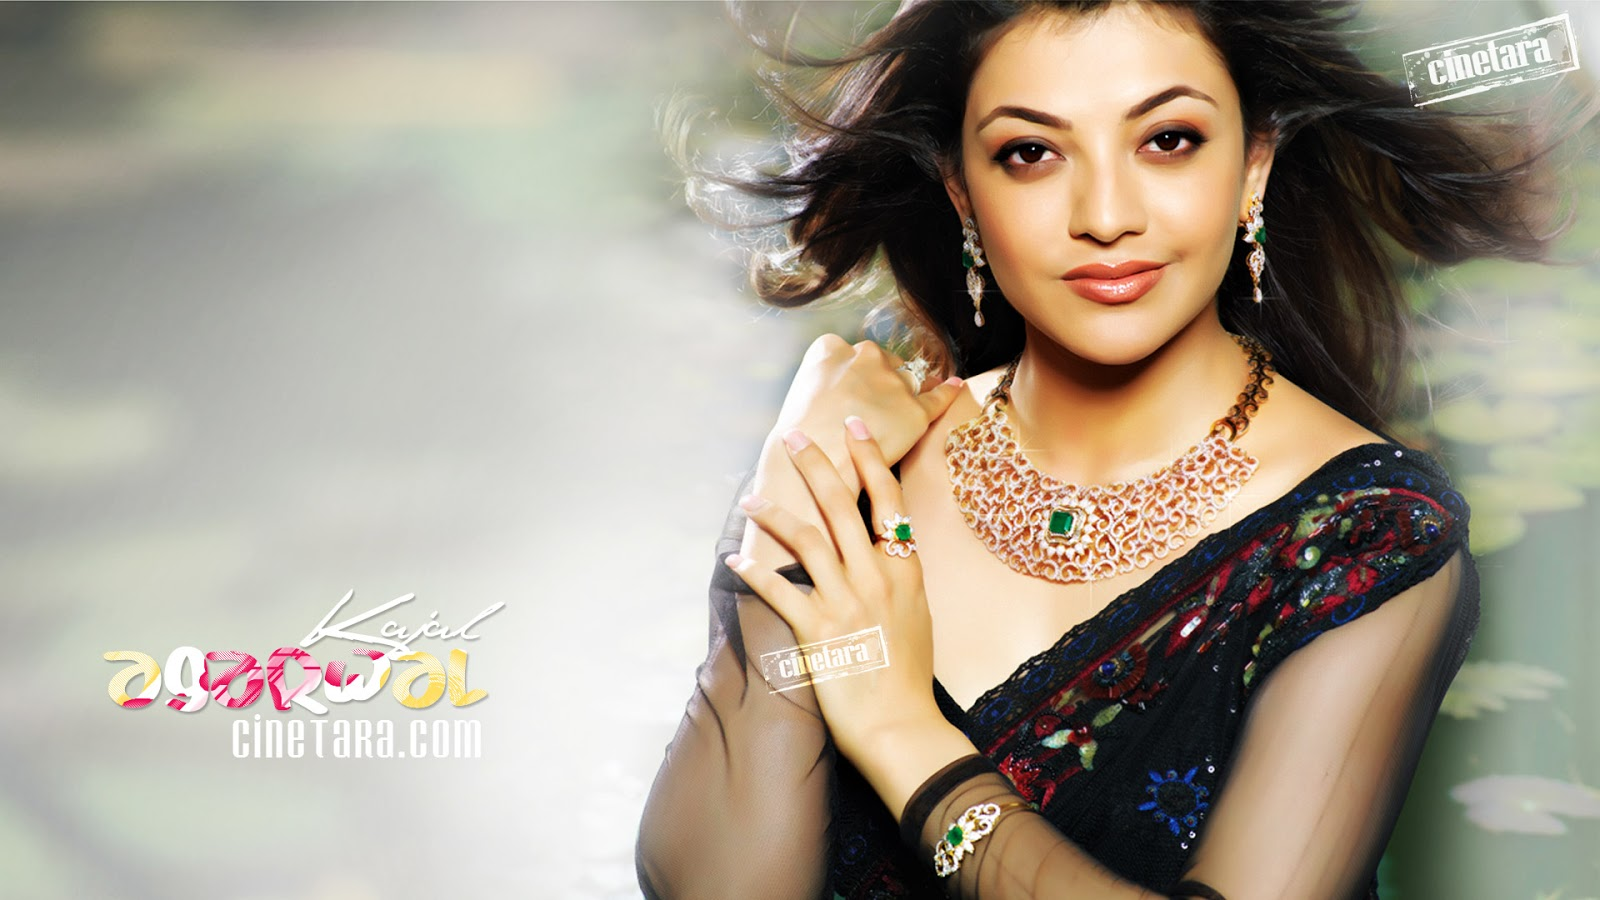 Telugu Movie Wallpapers